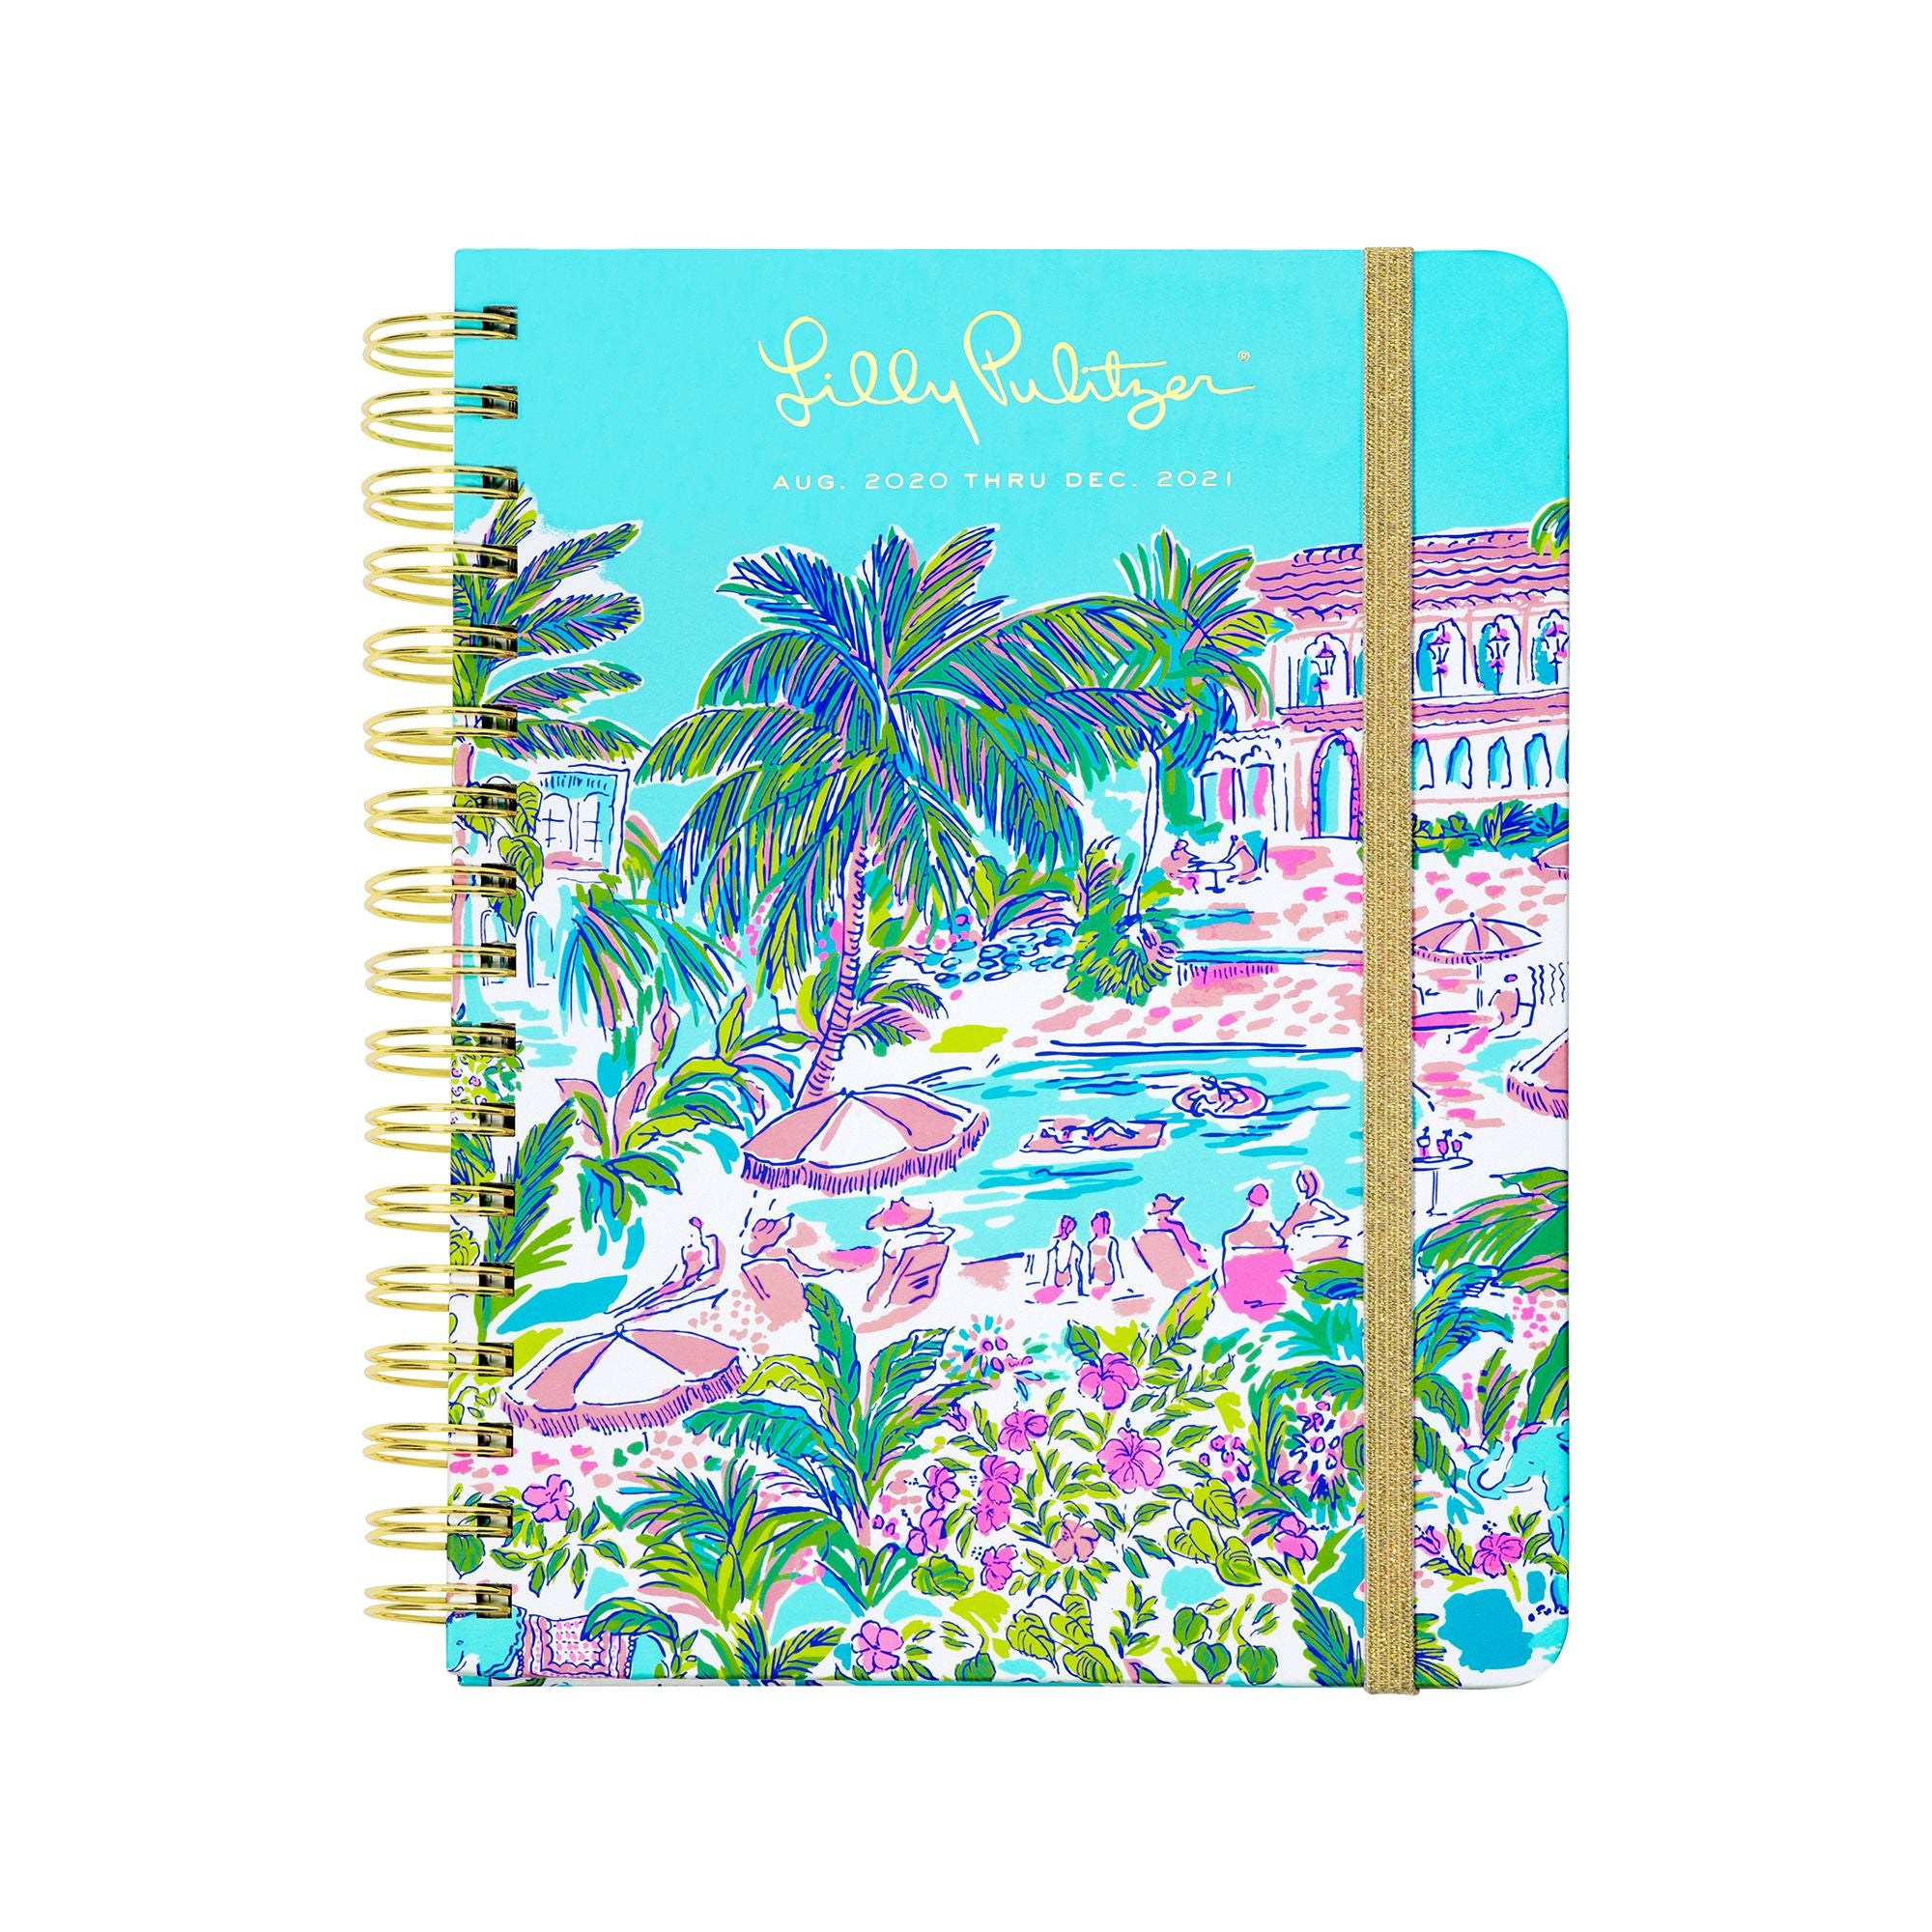 17 Month Agenda Large Island Hopping Toile